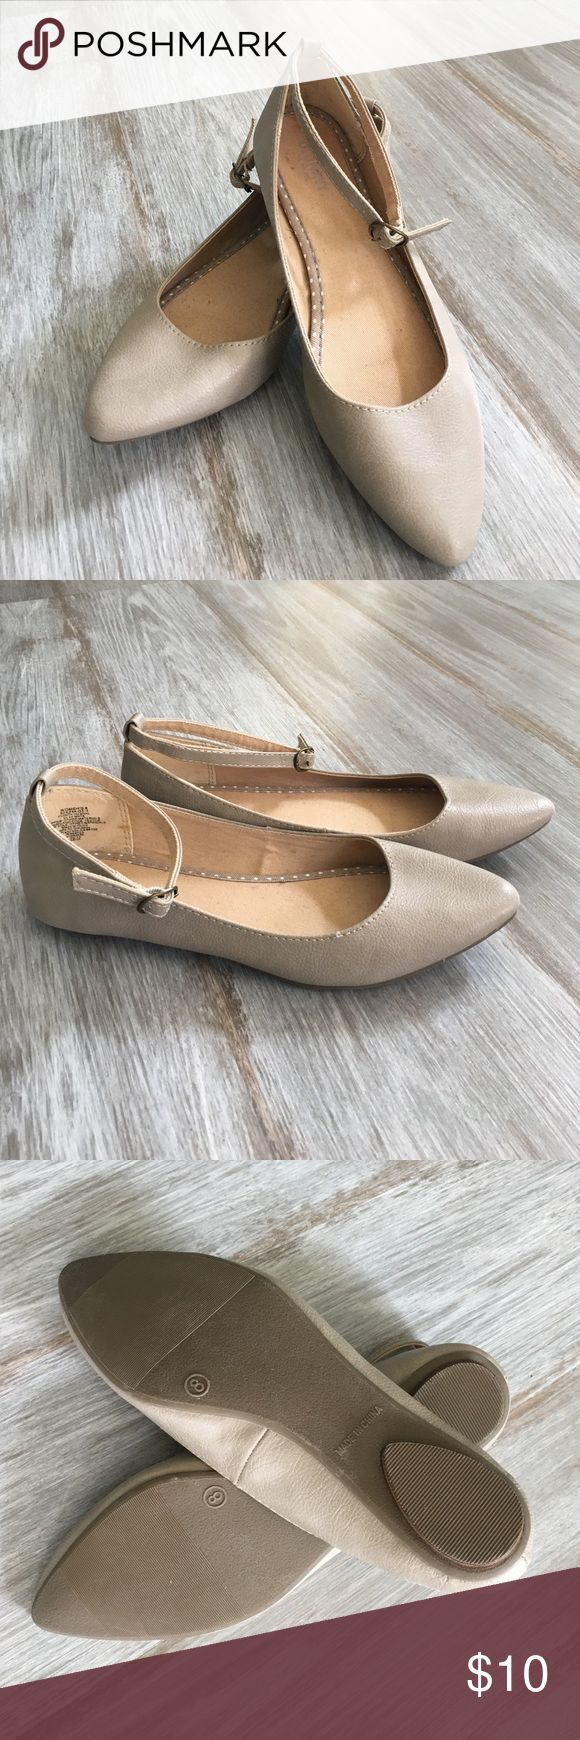 Neutral flats Bone, thin ankle strap flat; worn once Old Navy Shoes Flats & Loafers